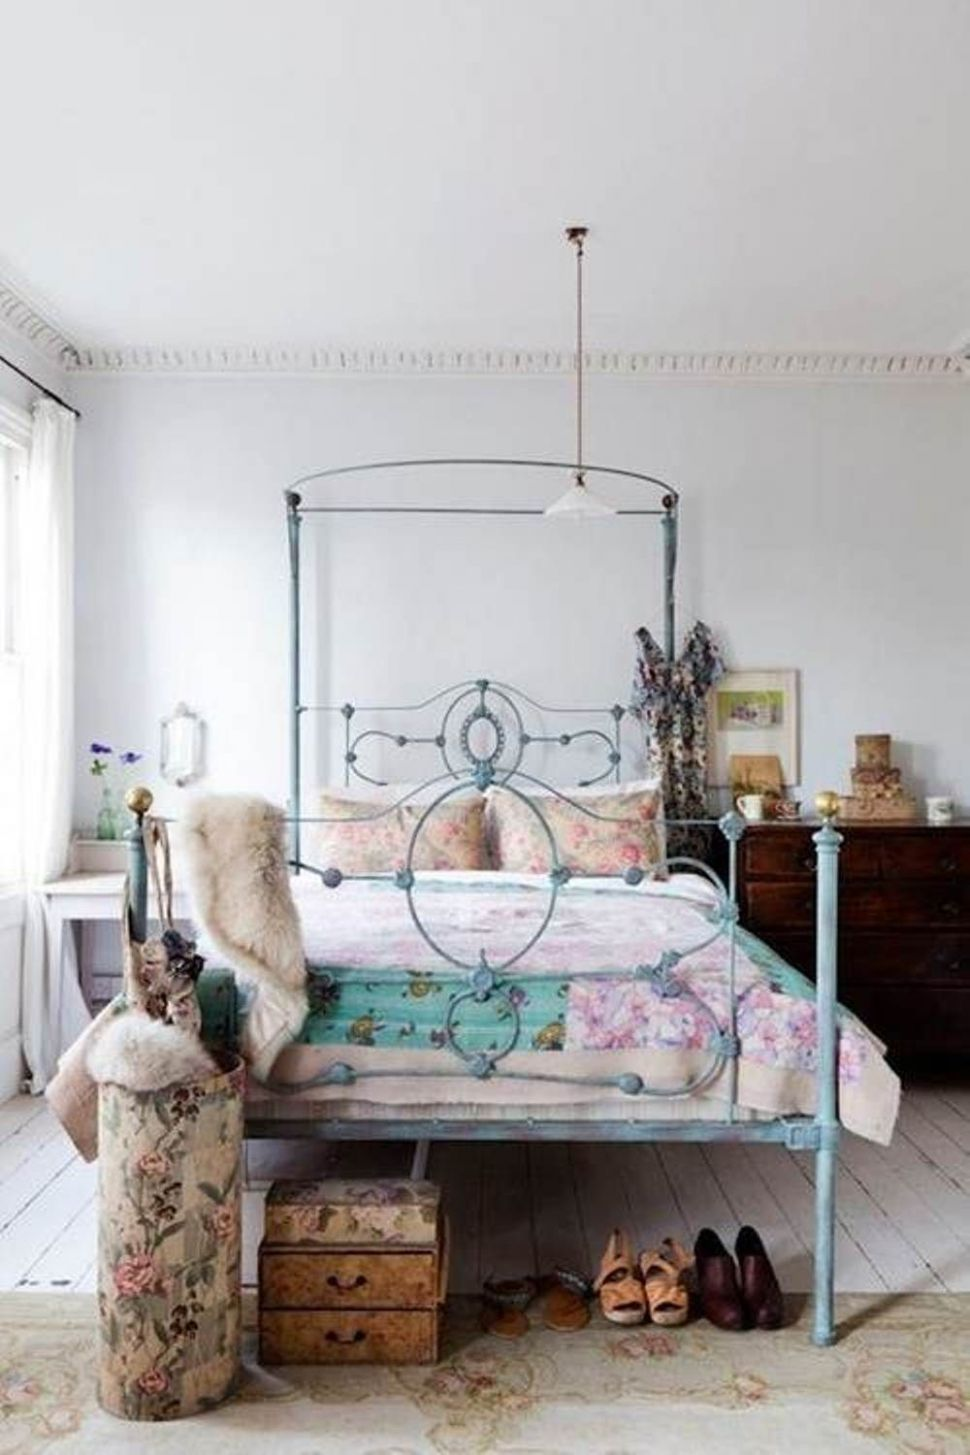 Beautiful Apartment Bedroom Ideas For Women With Artistic Eclectic ..